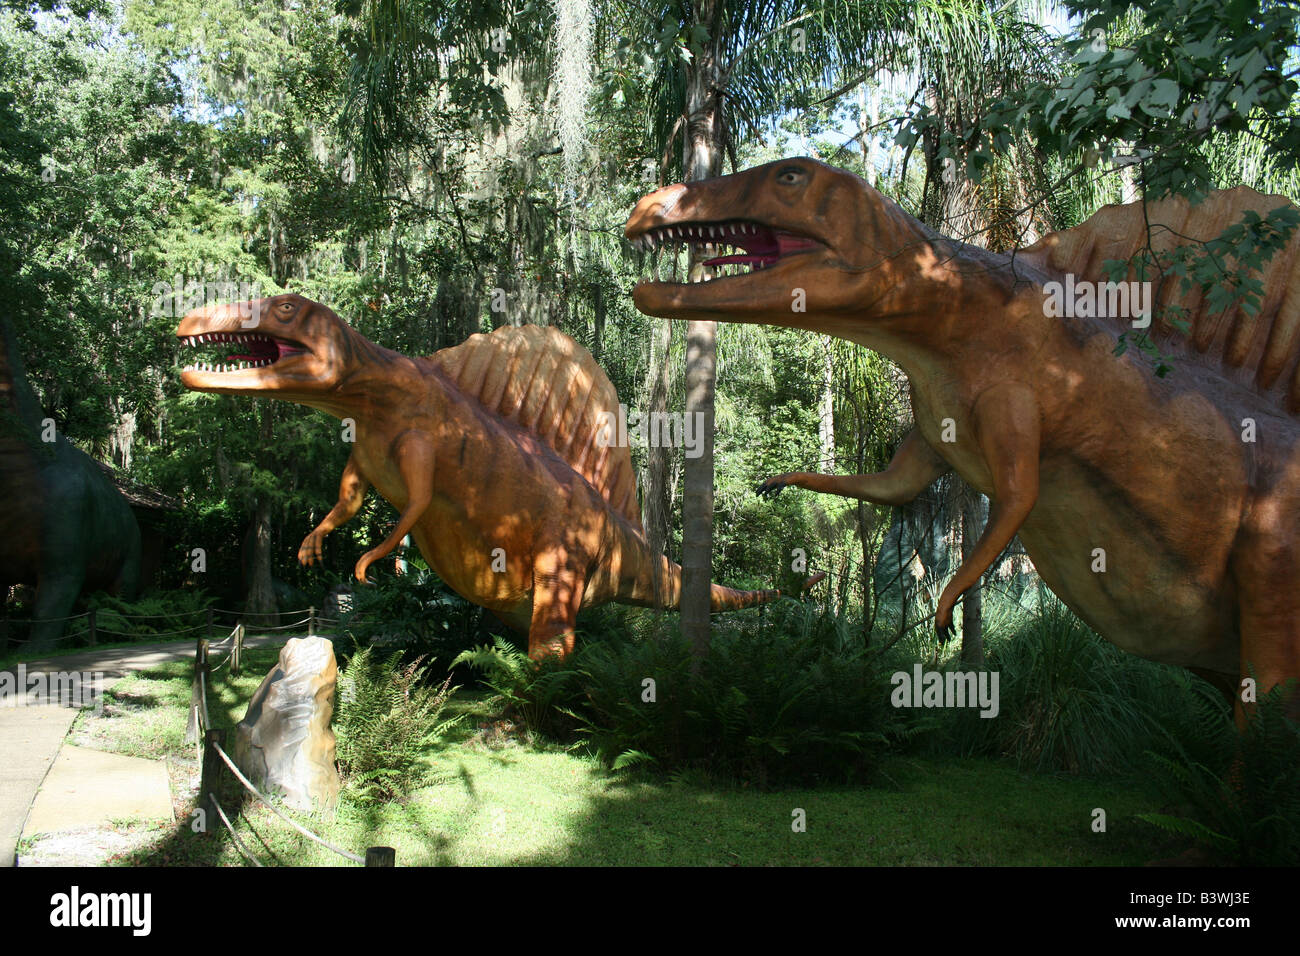 Spinosaurus dinosaur at Dinosaur World, Plant City, FL. - Stock Image